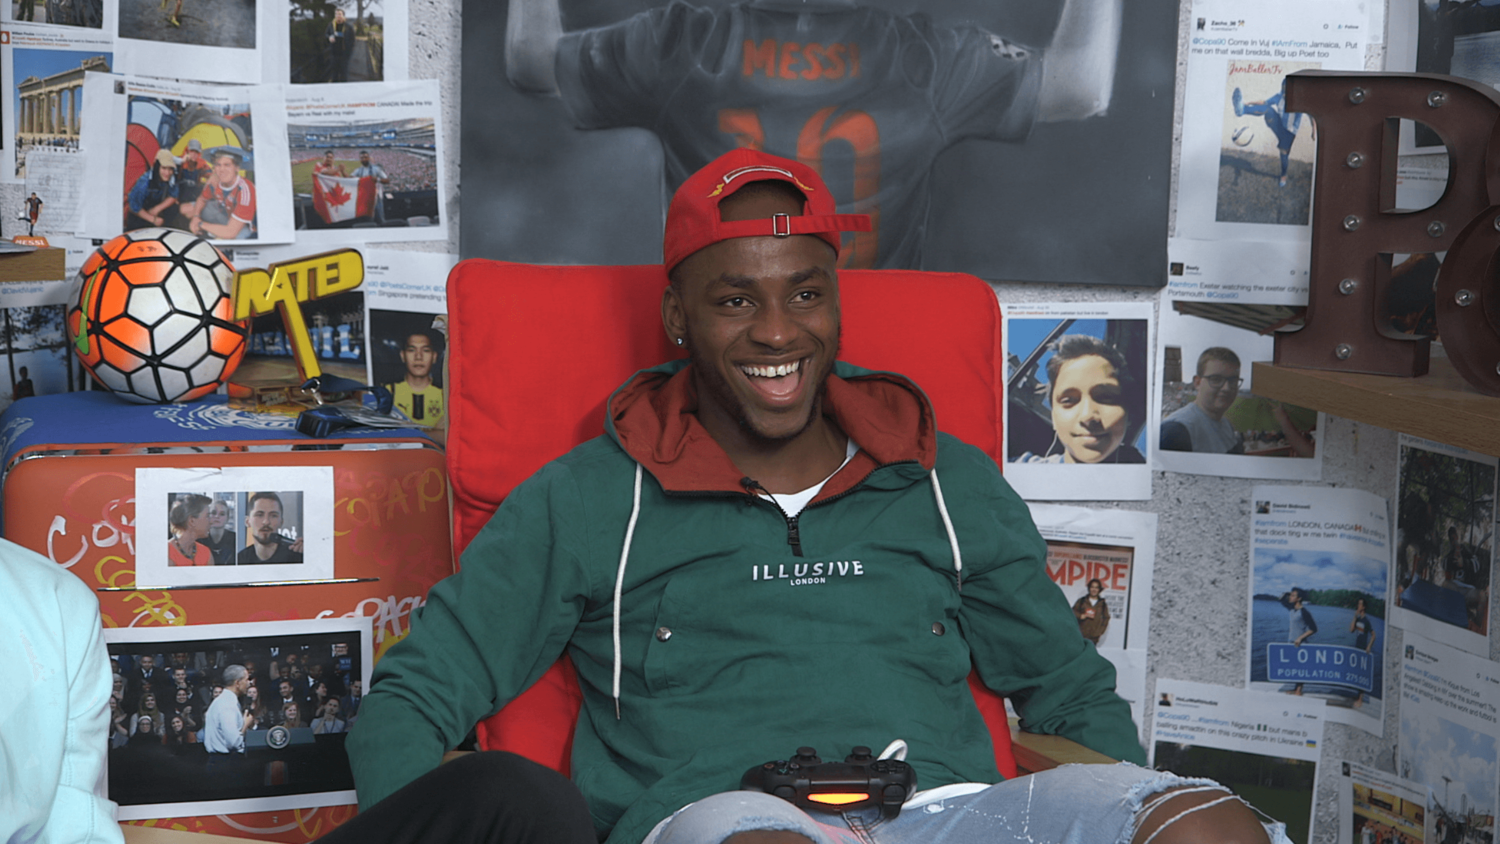 FIFA and Chill with Saido Berahino: On Stoke City, growing up as a refugee and more